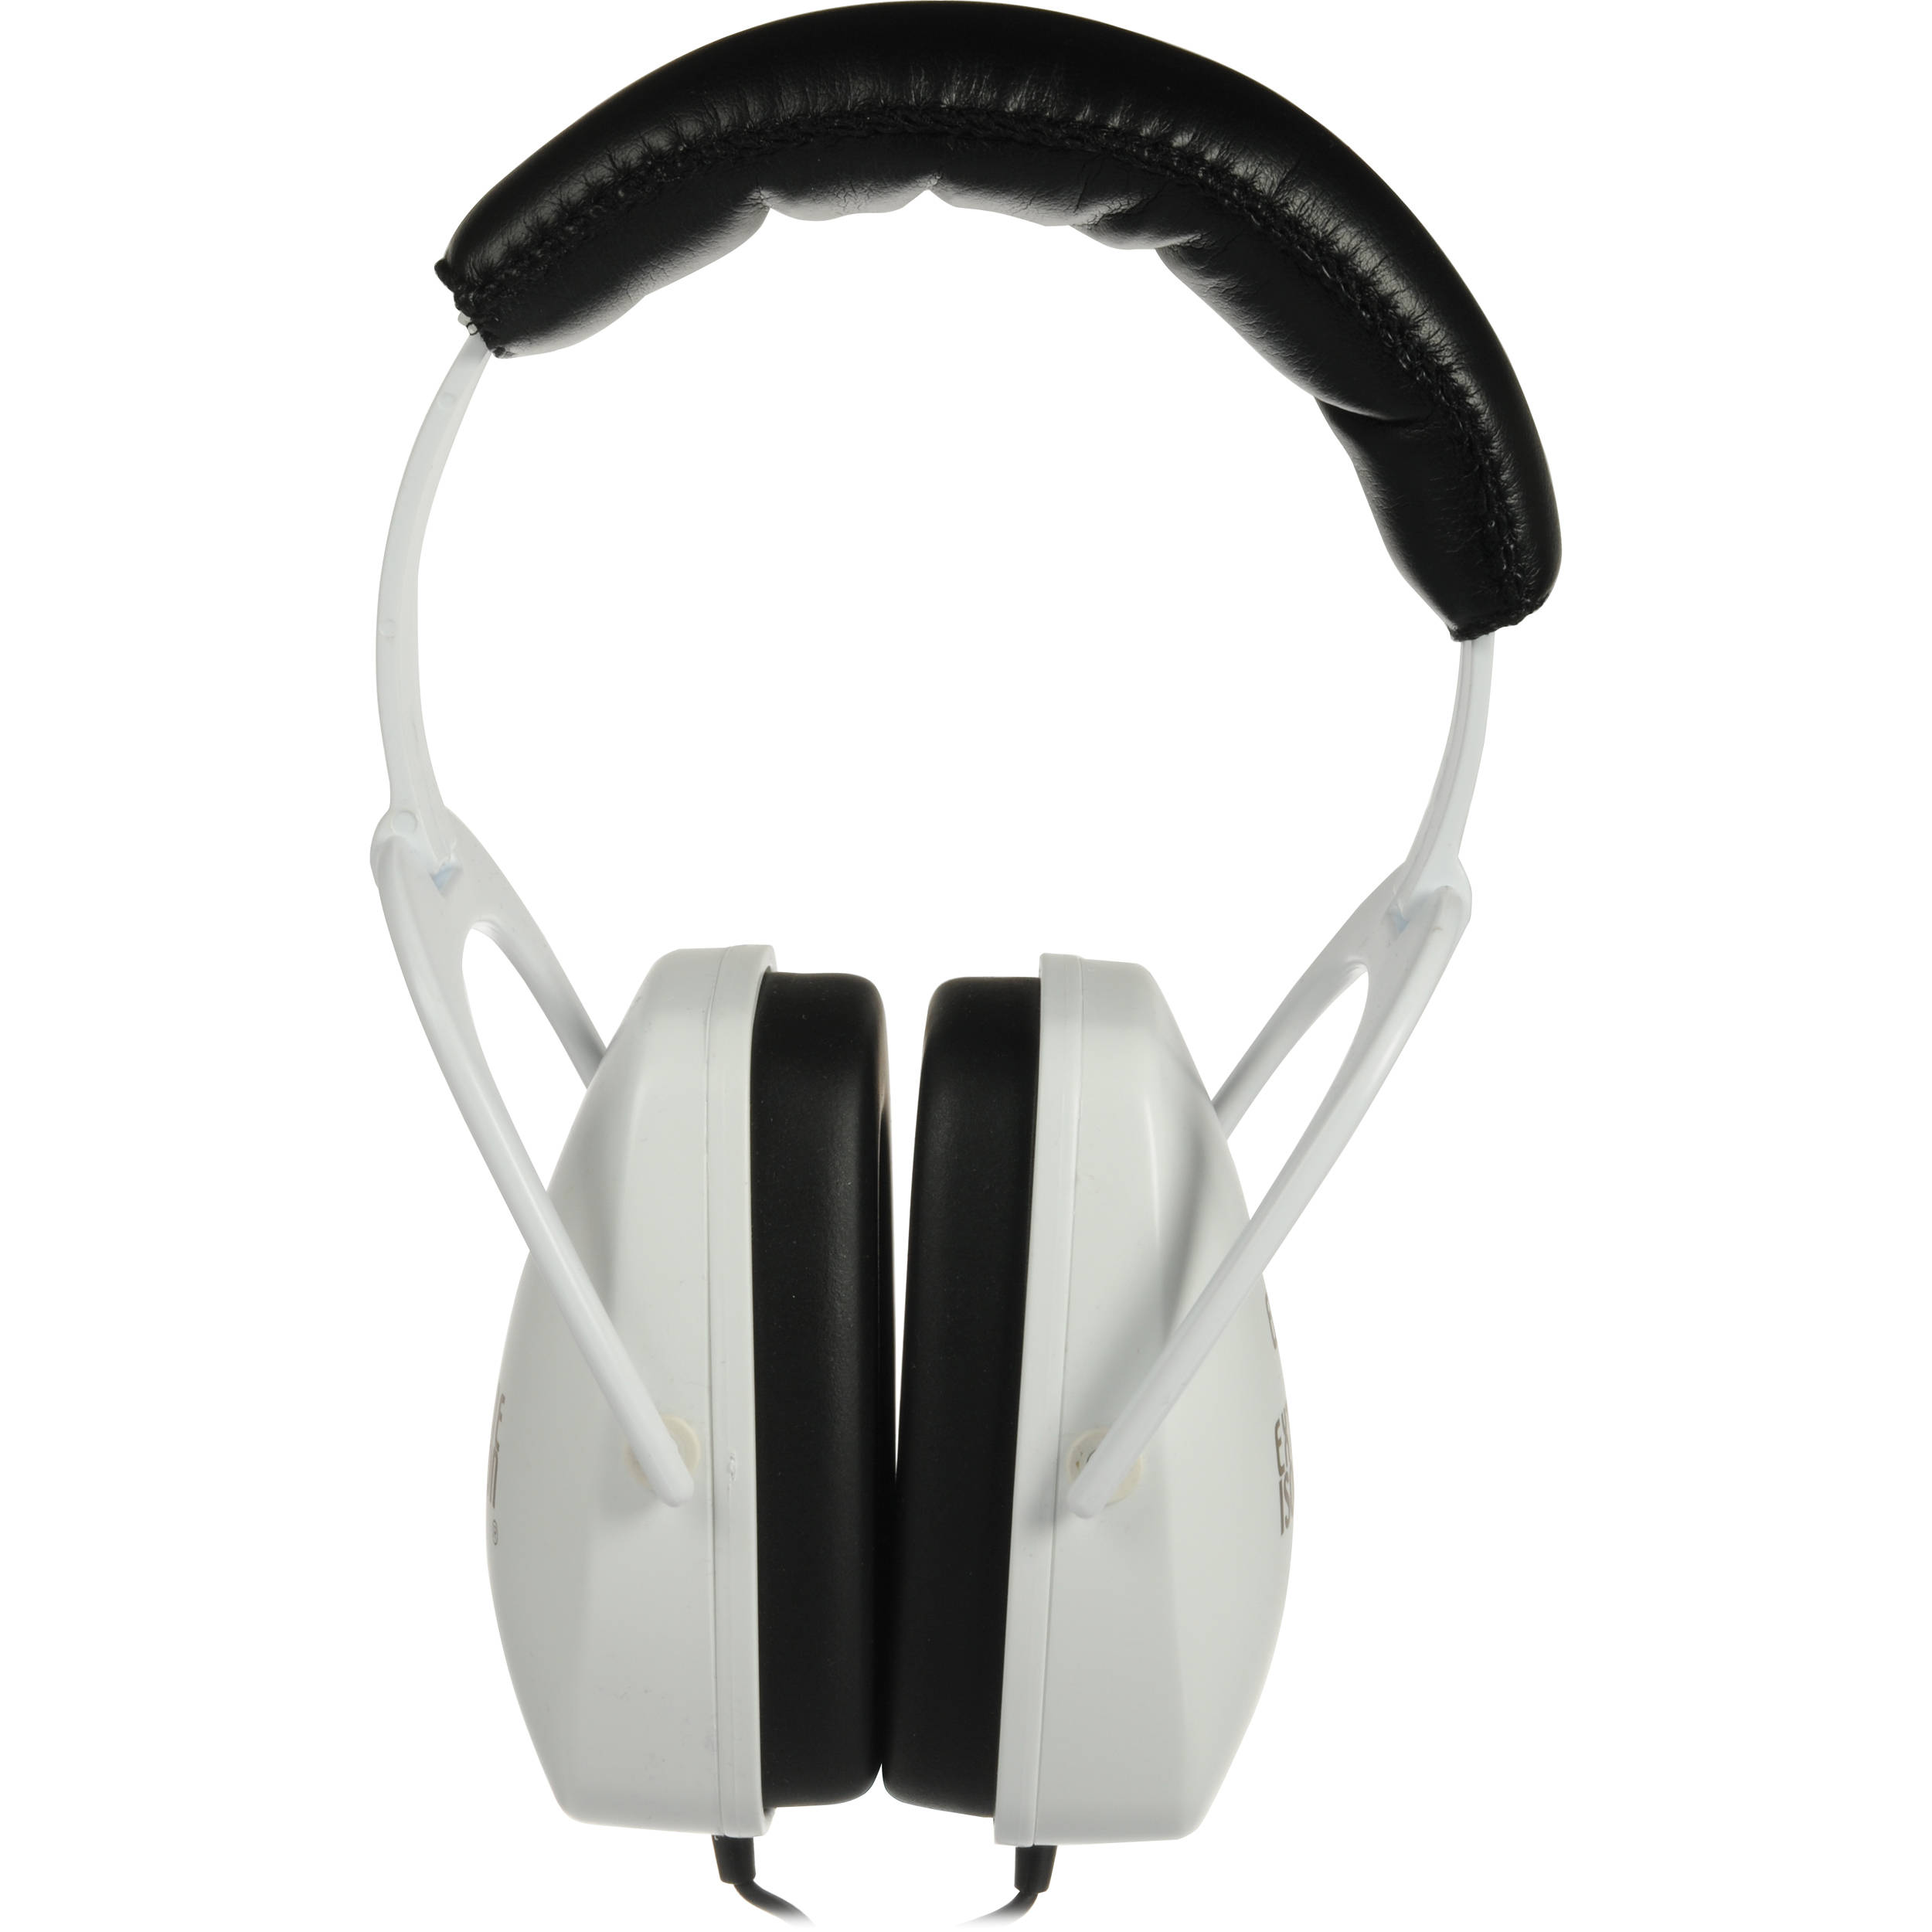 direct sound ex 29 extreme isolation headphones white ex 29w. Black Bedroom Furniture Sets. Home Design Ideas